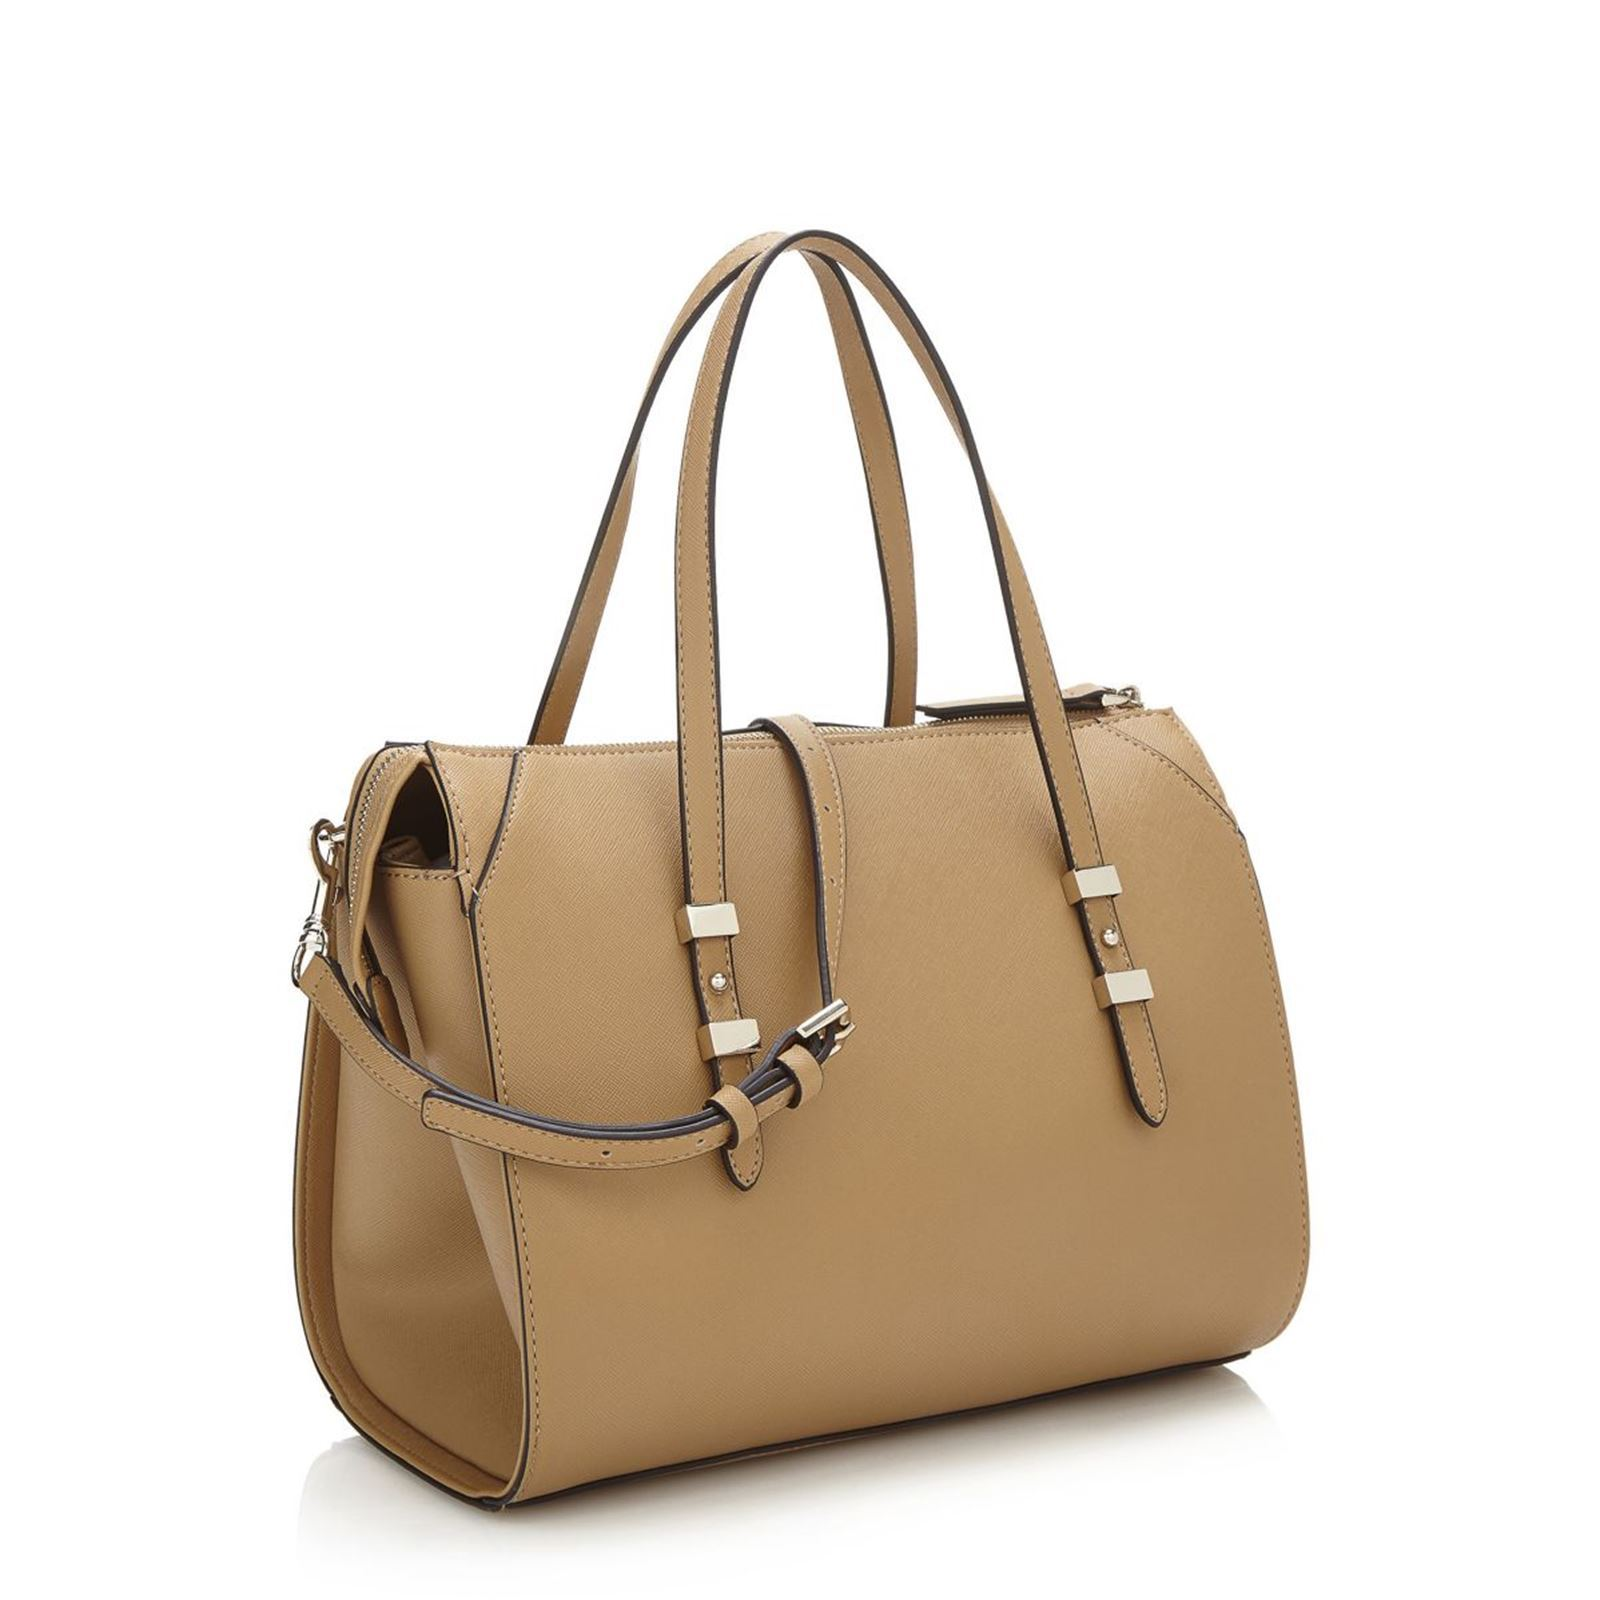 Clair Guess Sac Bowling Marron Gia wYY6IOq